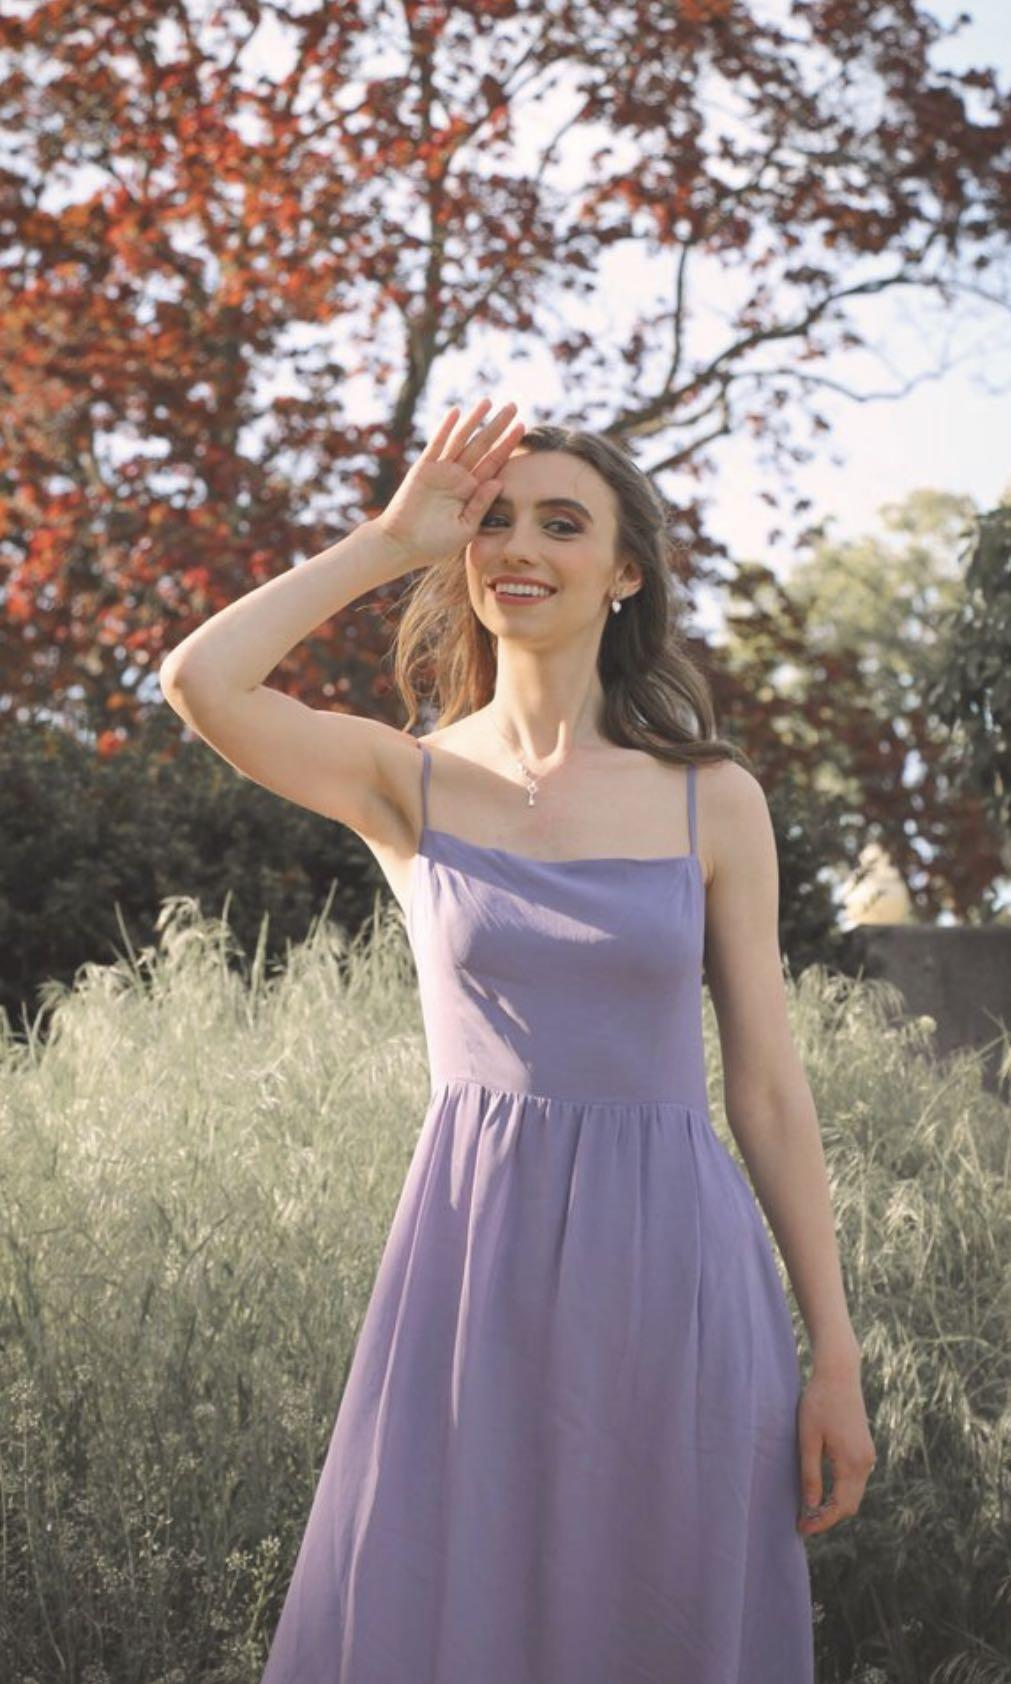 Reformation styled long summer dress by Pinkpink / lavender purple colour / Size M